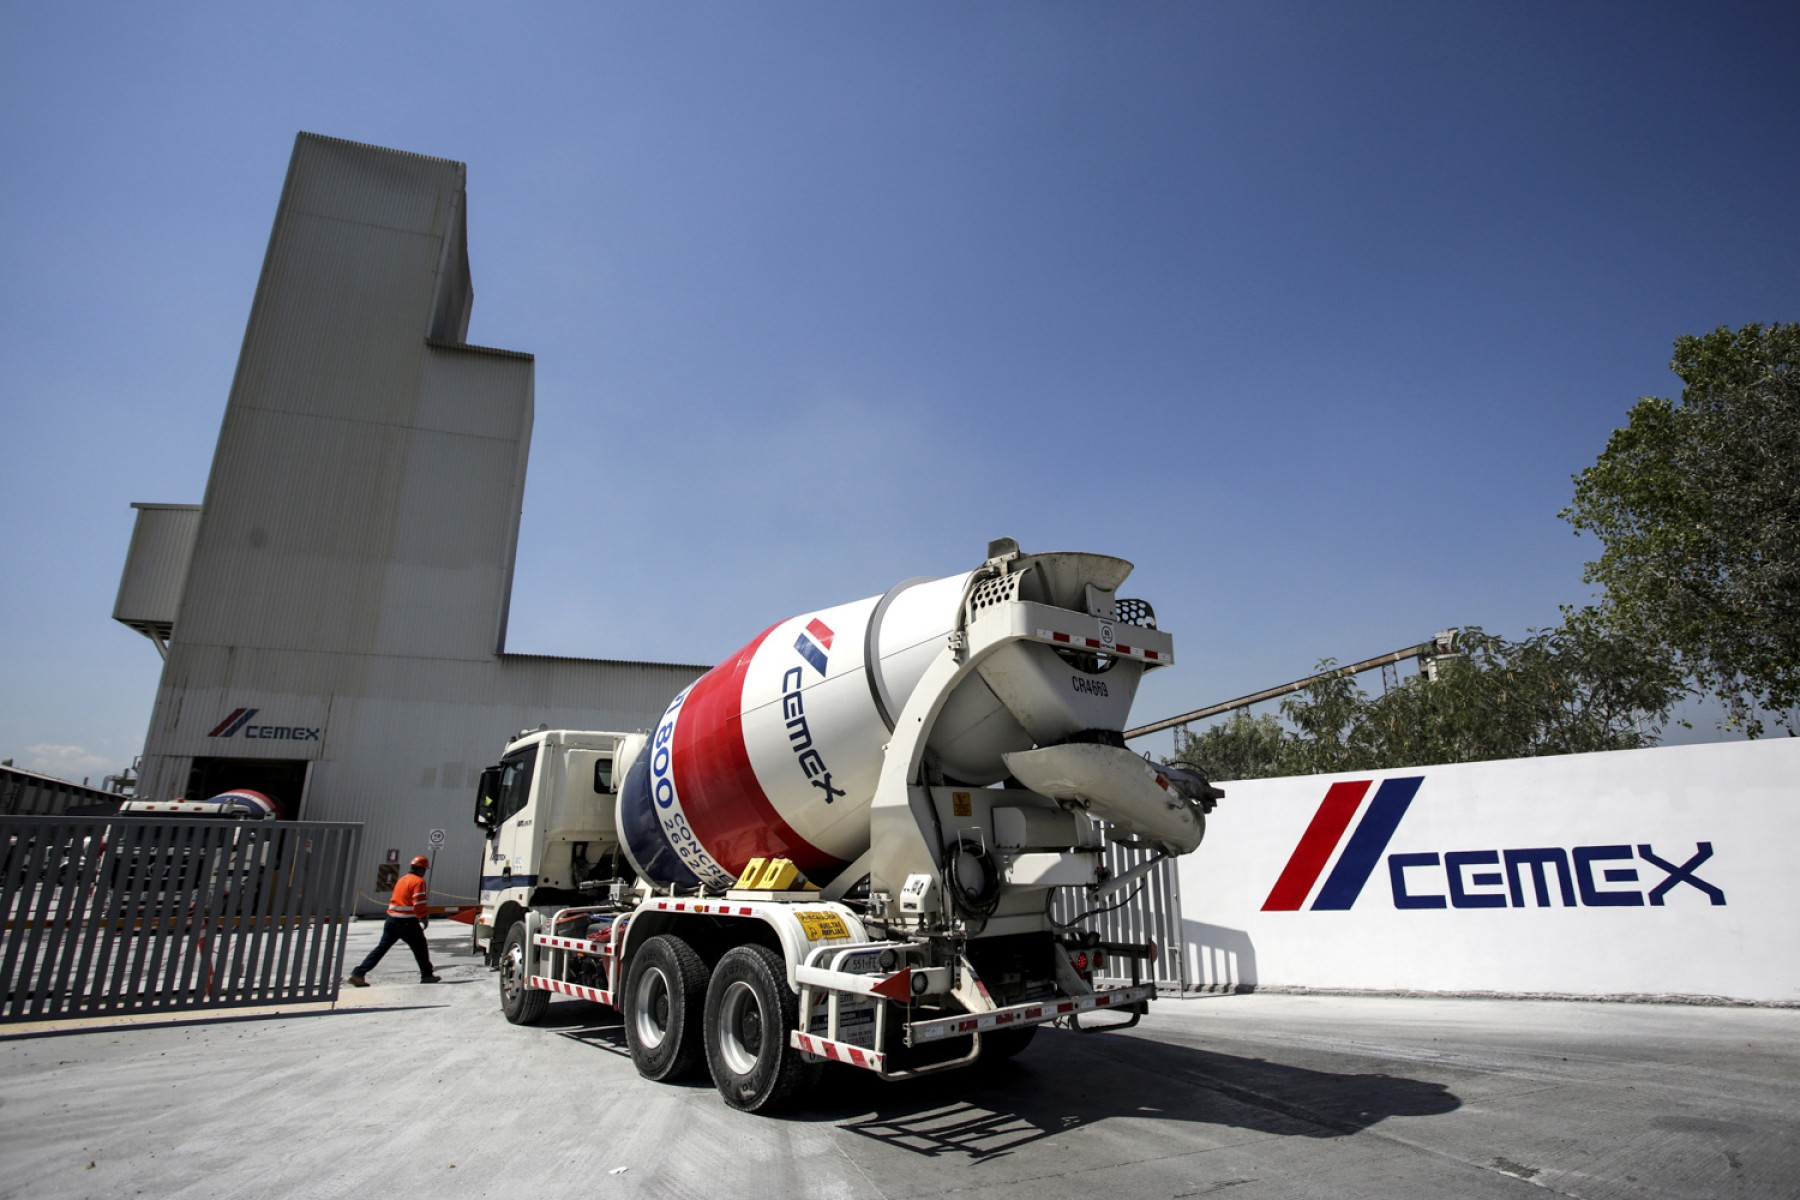 CEMEX implements technology to reduce carbon emissions